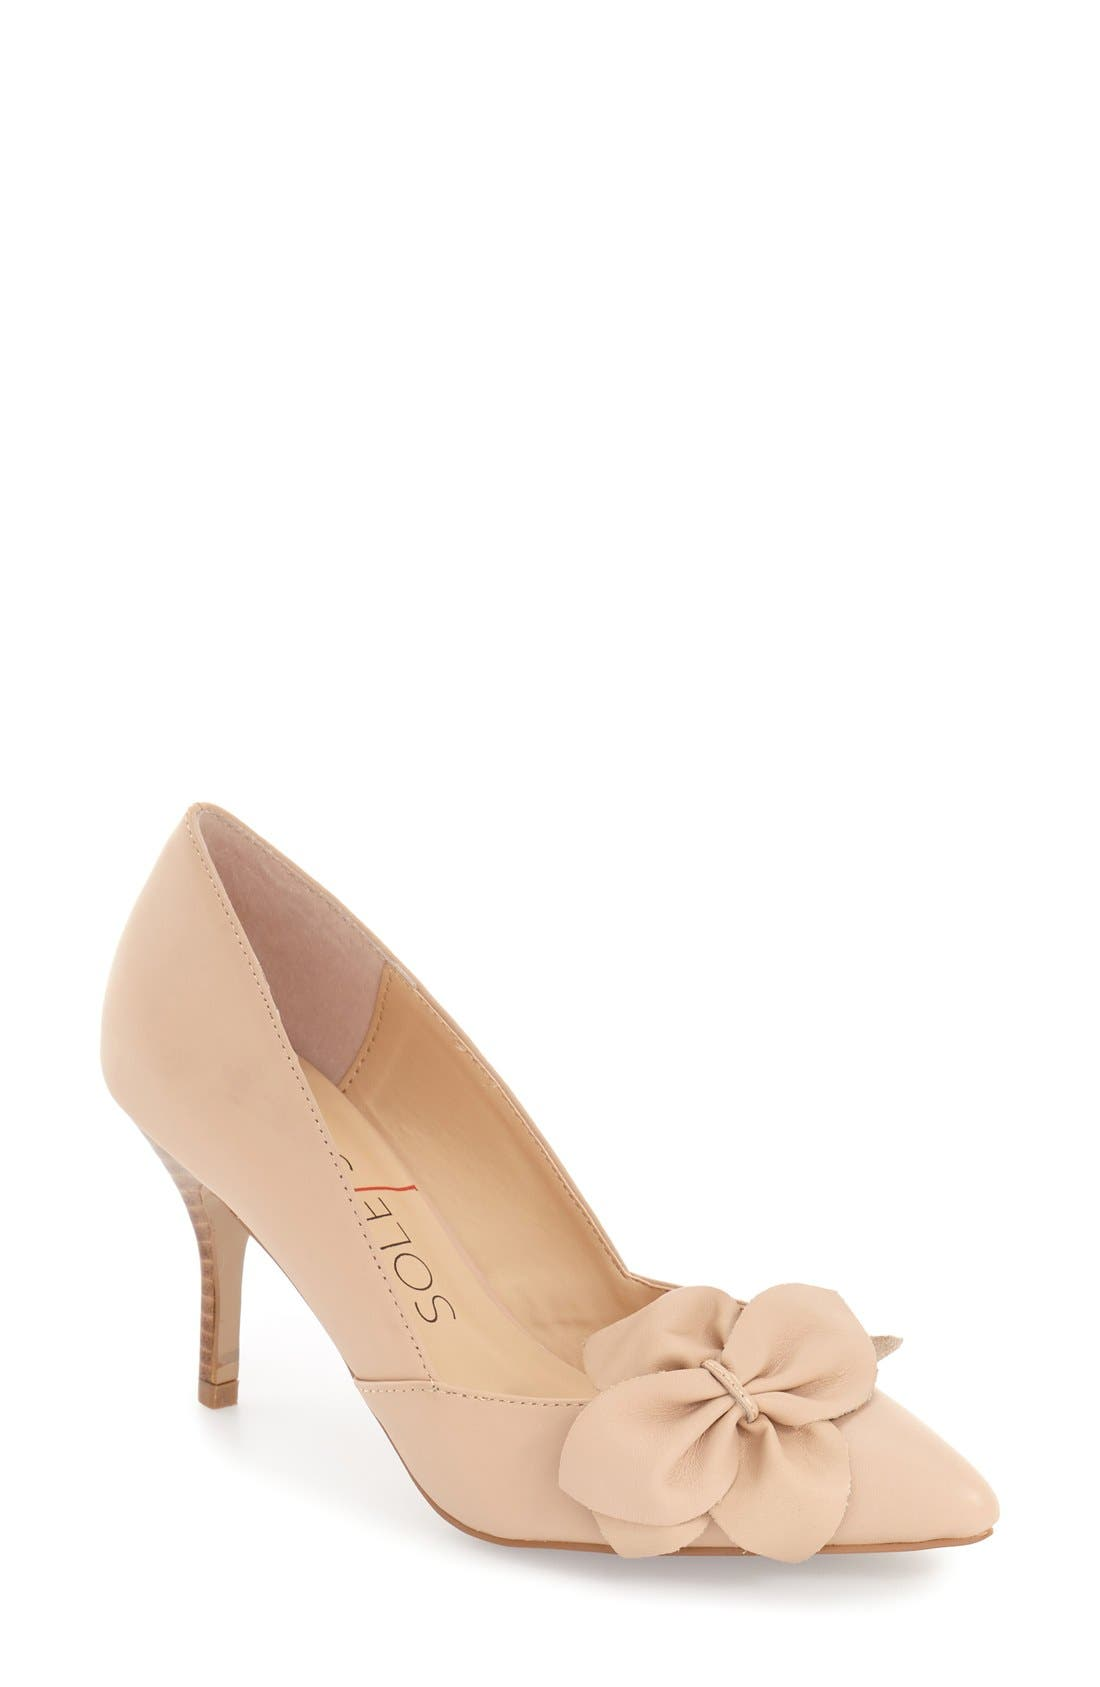 Main Image - Sole Society 'Aveline' Pointy Toe Pump (Women)